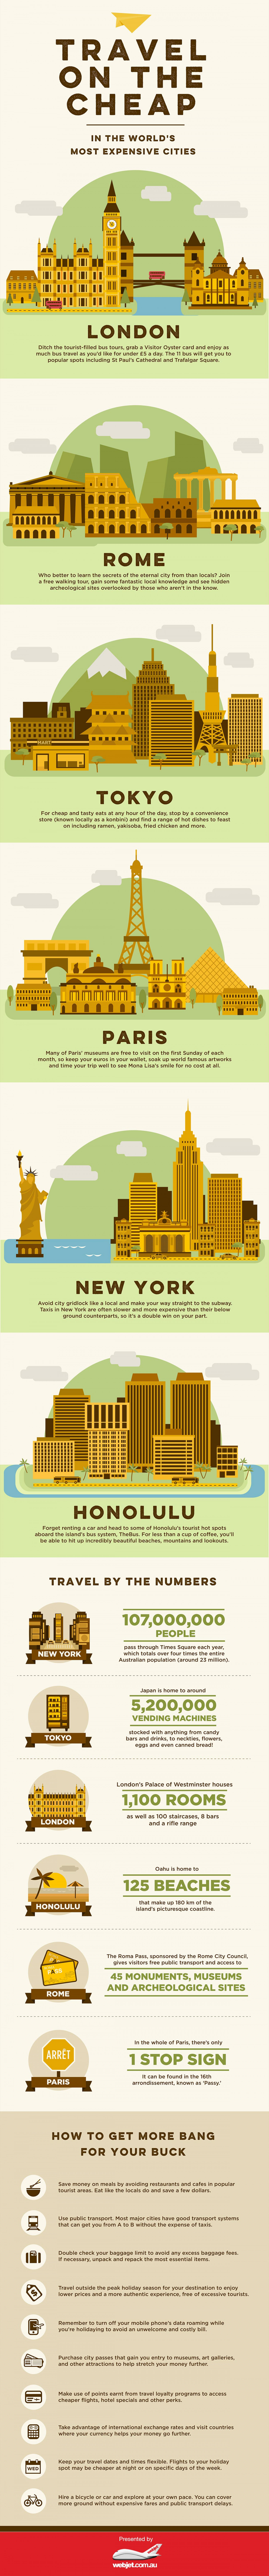 Travel on the Cheap in the World's Most Expensive Cities Infographic